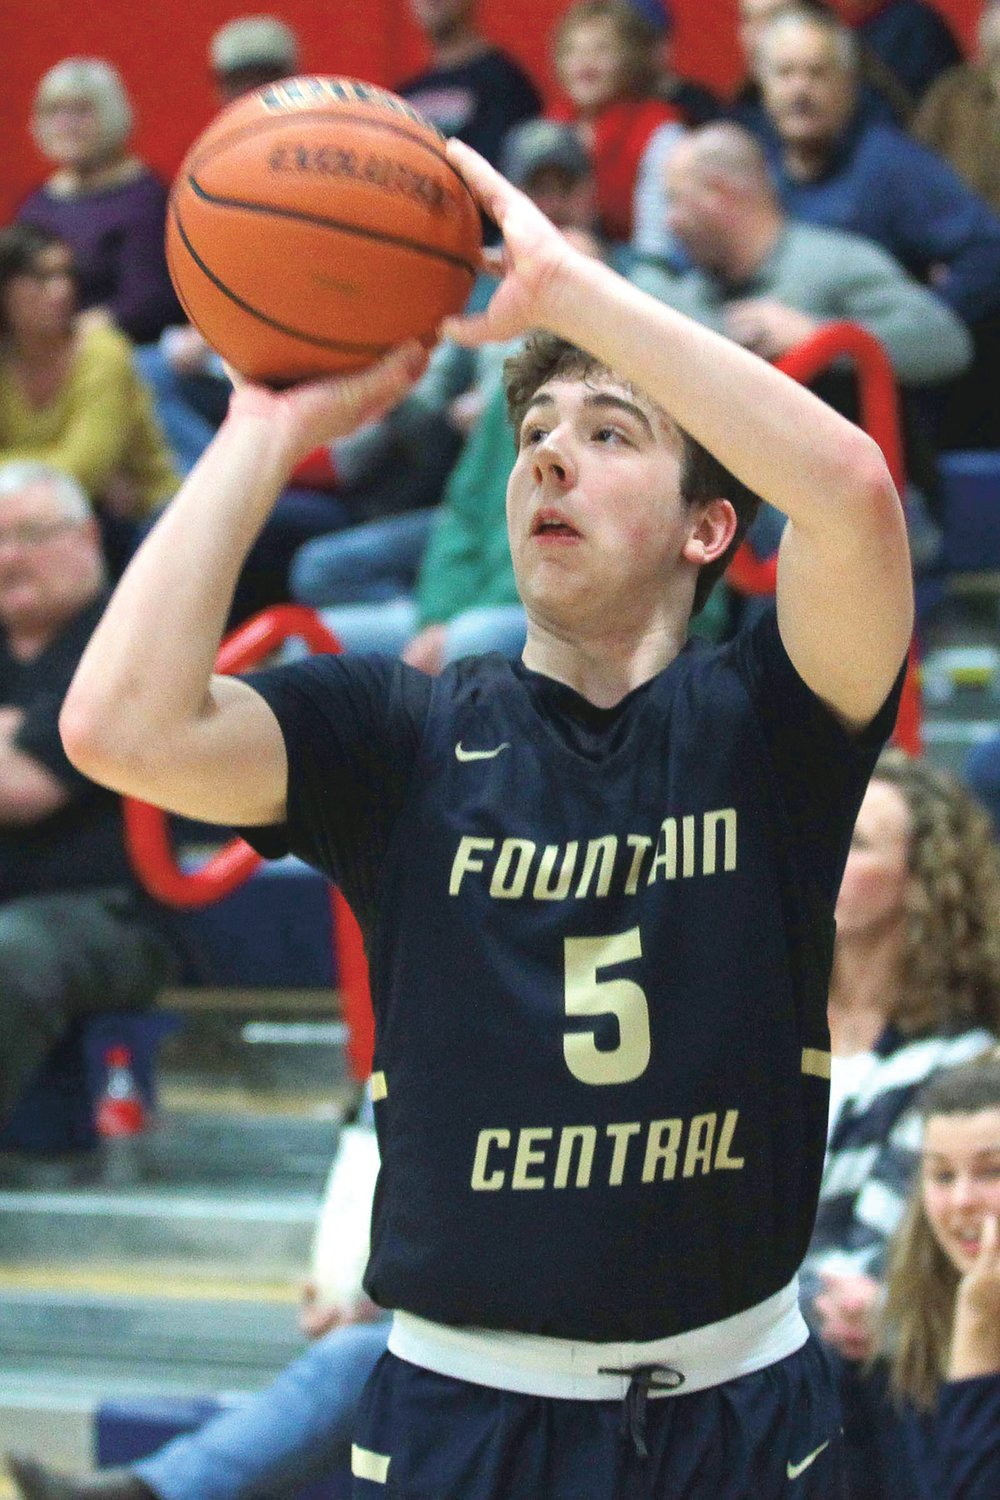 Andrew Shabi of Fountain Central hits one of his 3-pointers in the first period during a loss to Seeger earlier this season...